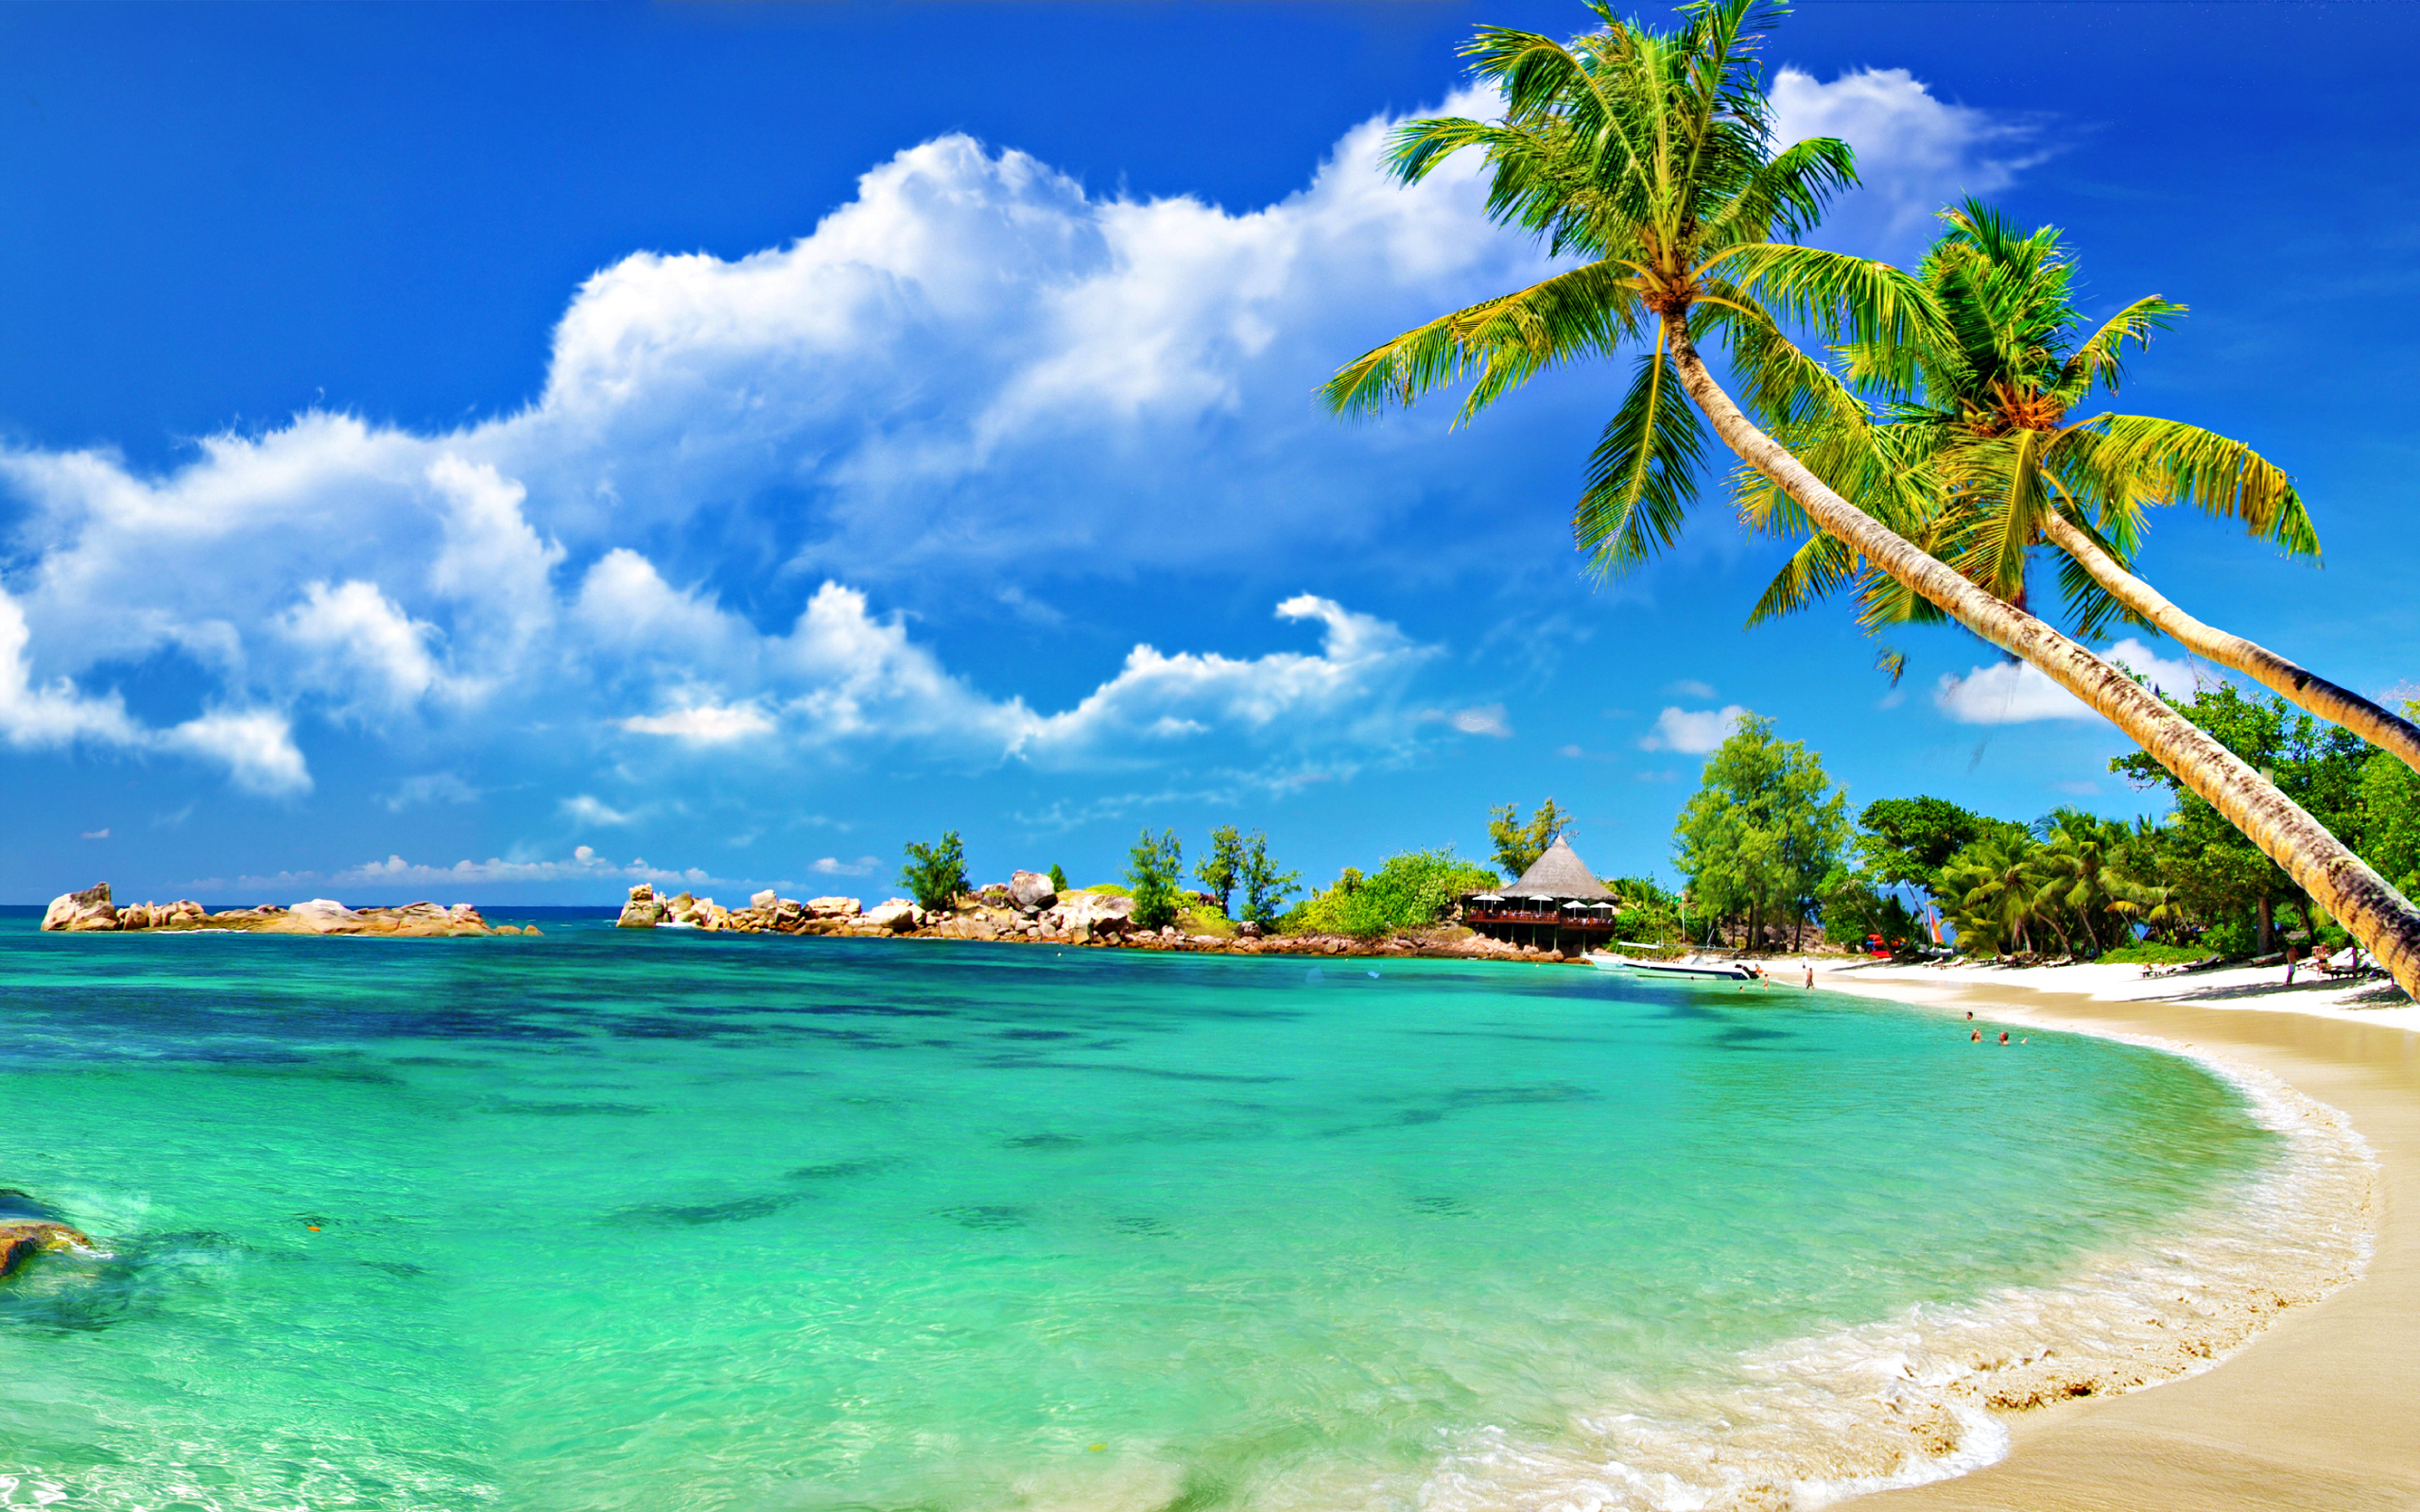 Tropical Wallpaper 12547. Category: Beach Resolution: 2560x1600px